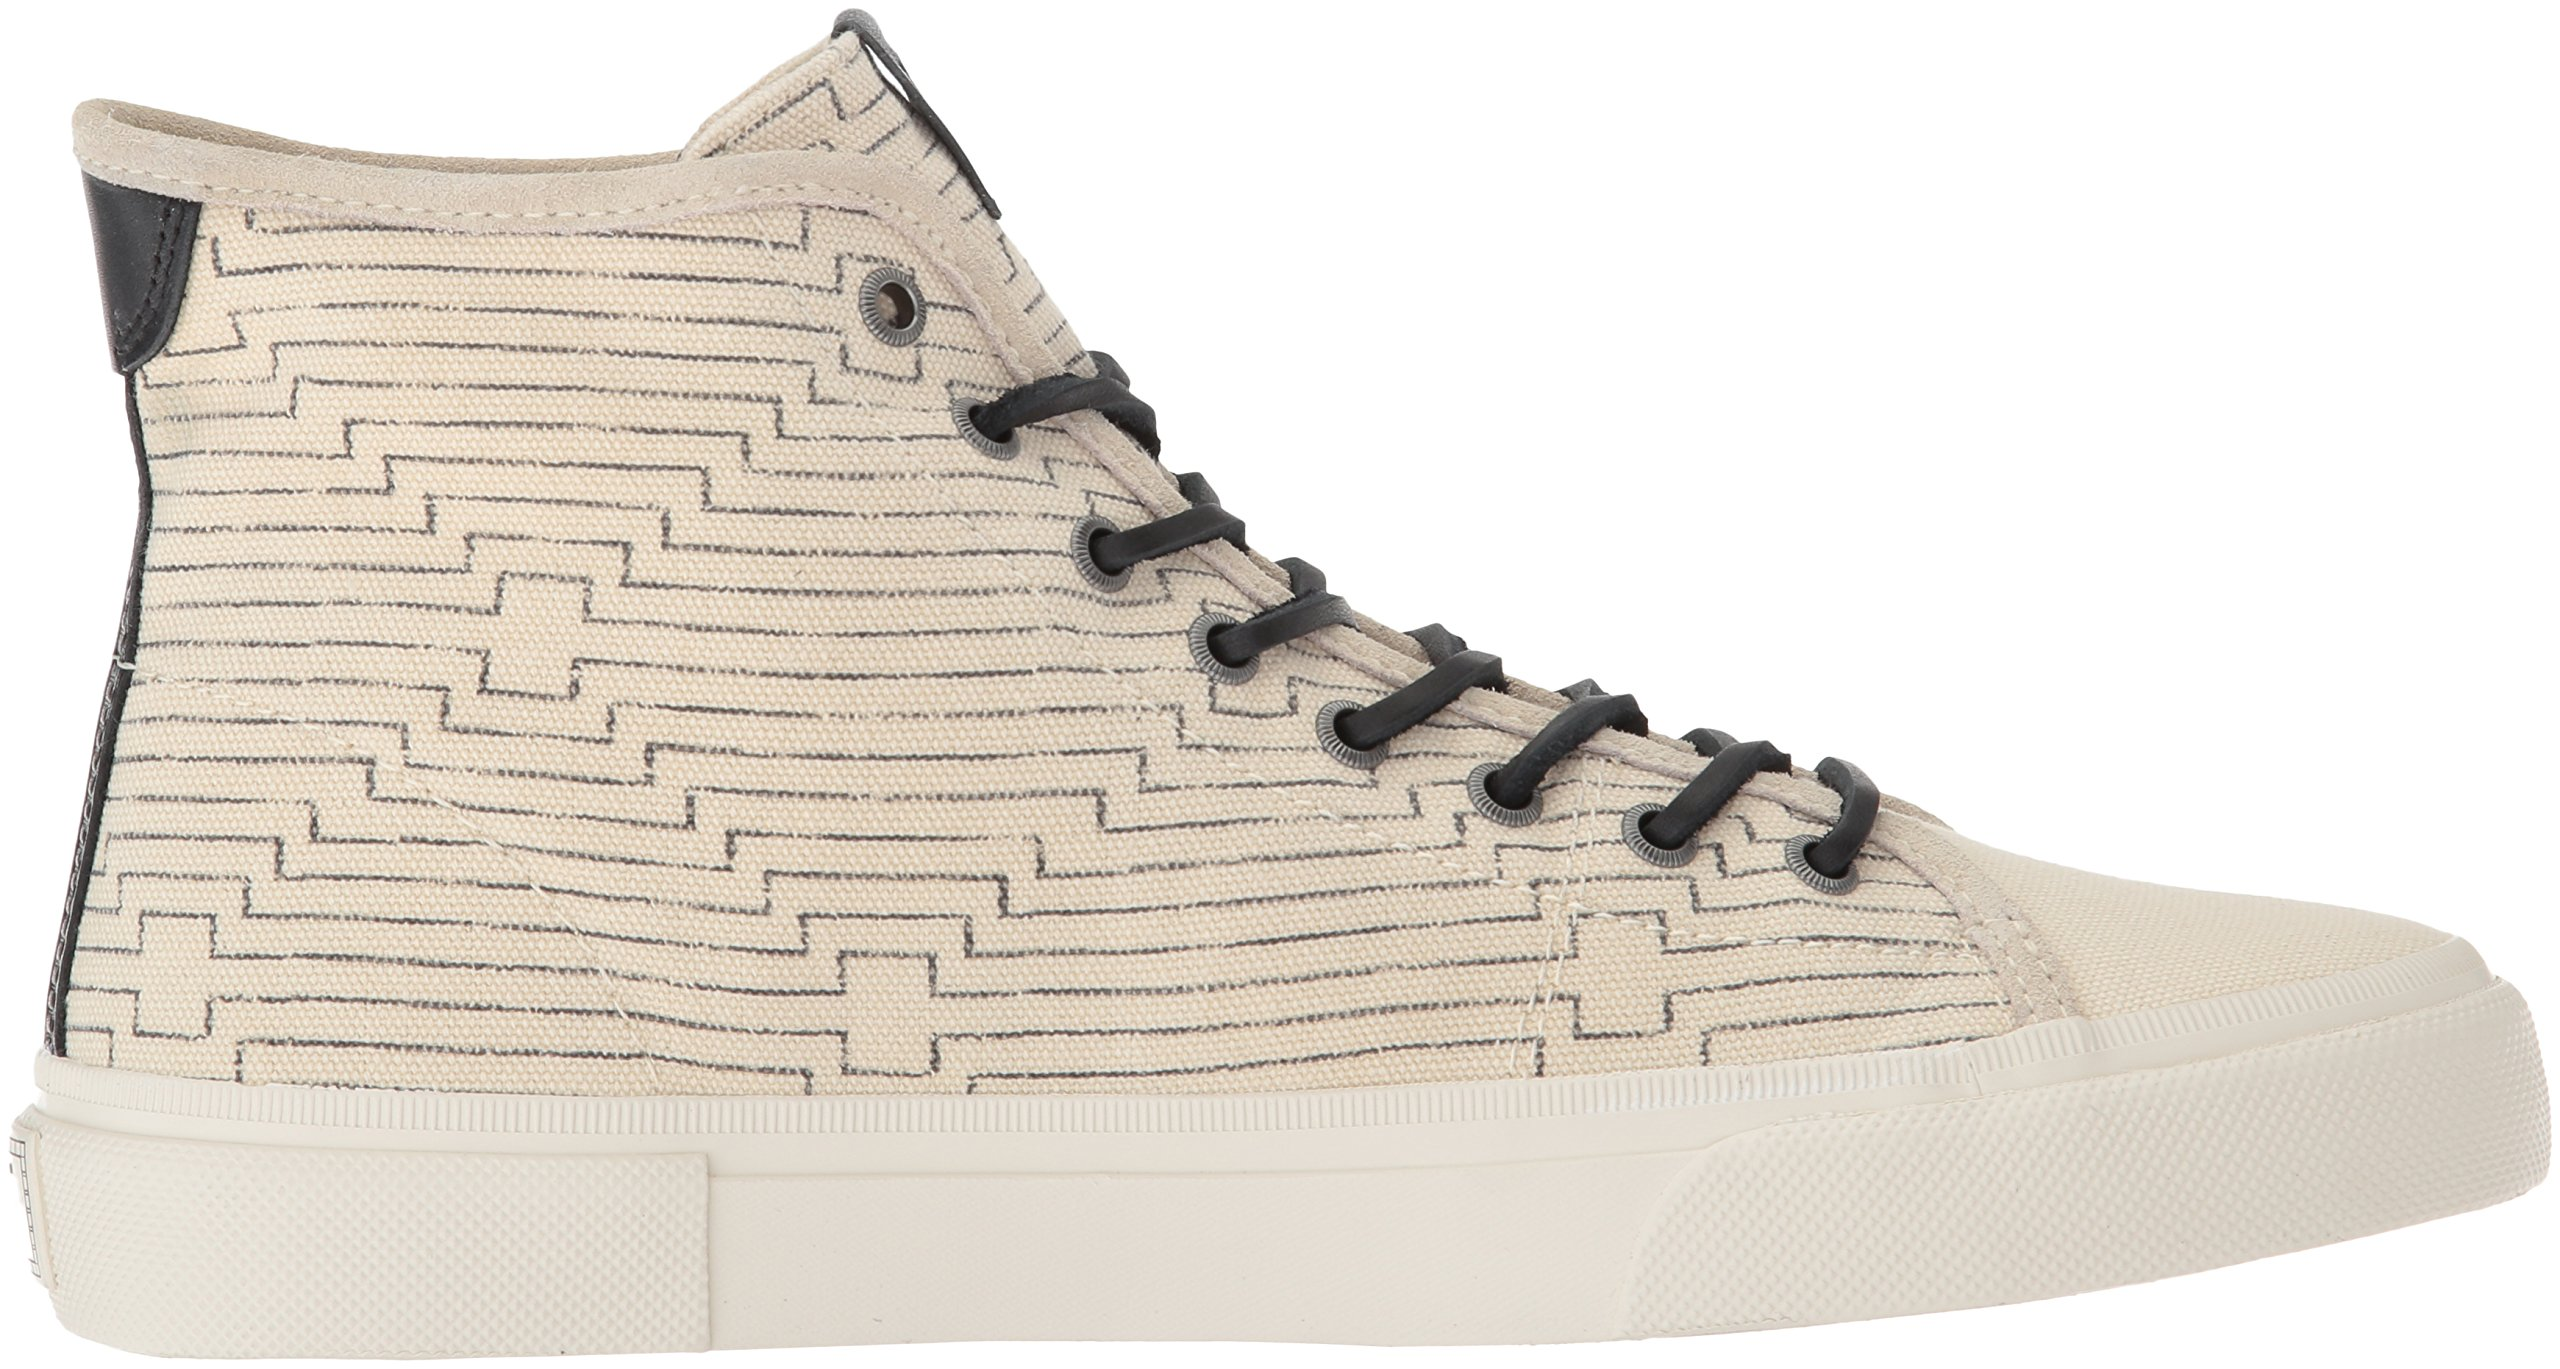 FRYE Men's Ludlow High Canvas Print Sneaker, Off White, 8.5 Medium US by FRYE (Image #6)